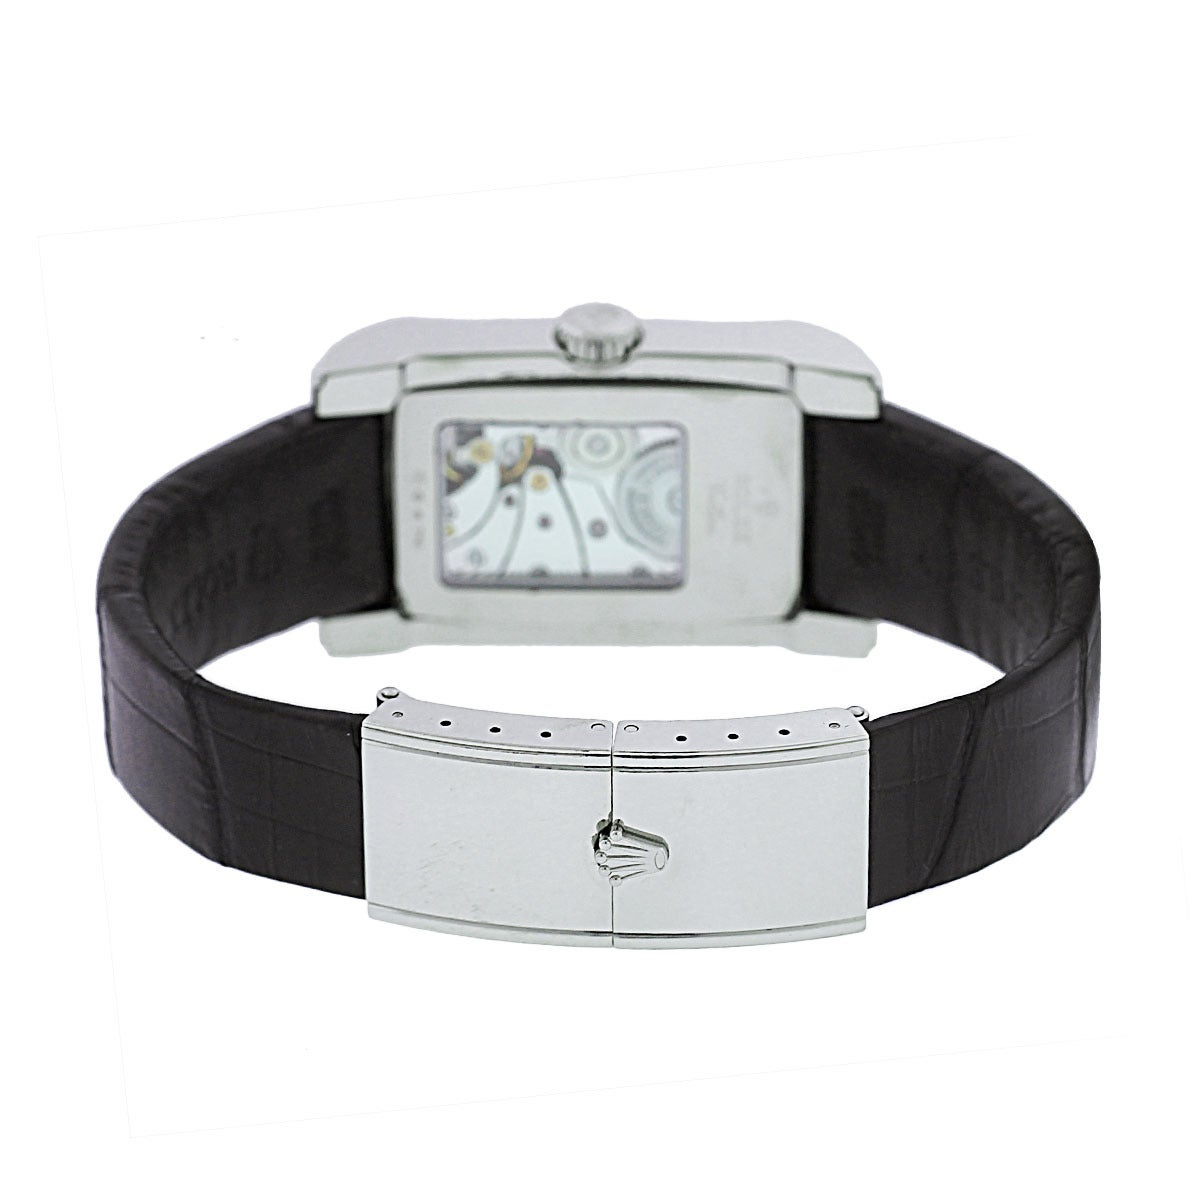 Women's Rolex White Gold Cellini Prince Automatic Wristwatch Ref 5443/9 For Sale